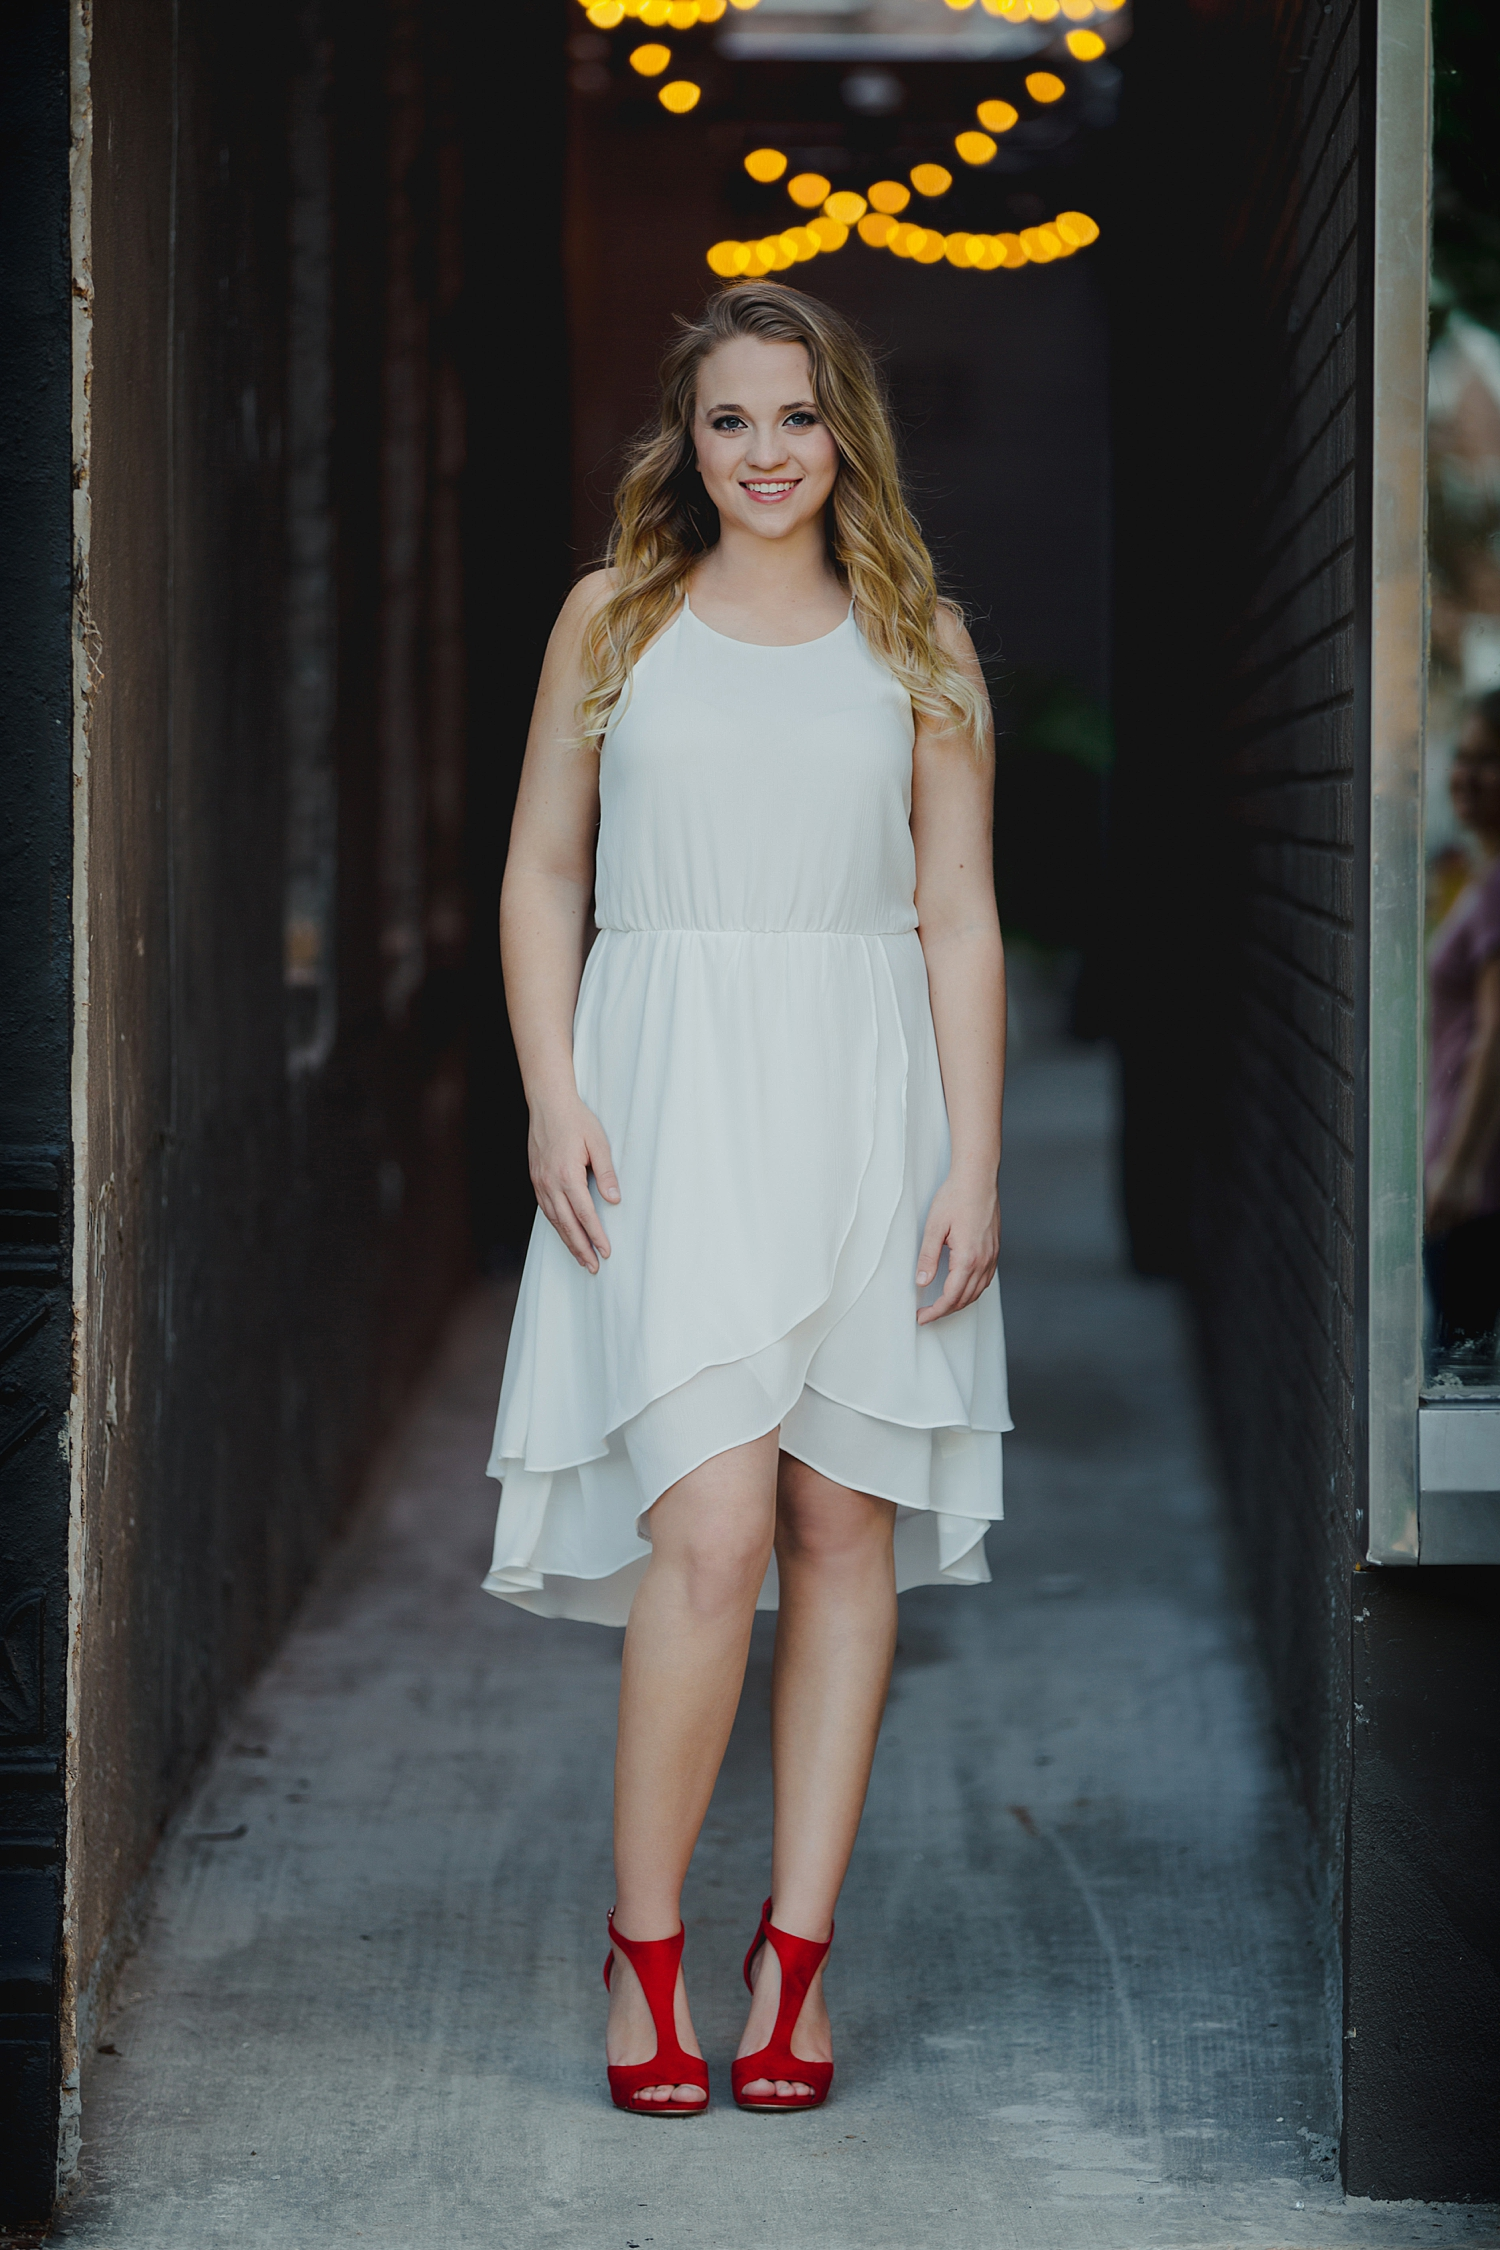 downtown-monroe-senior-pictures-9.jpg